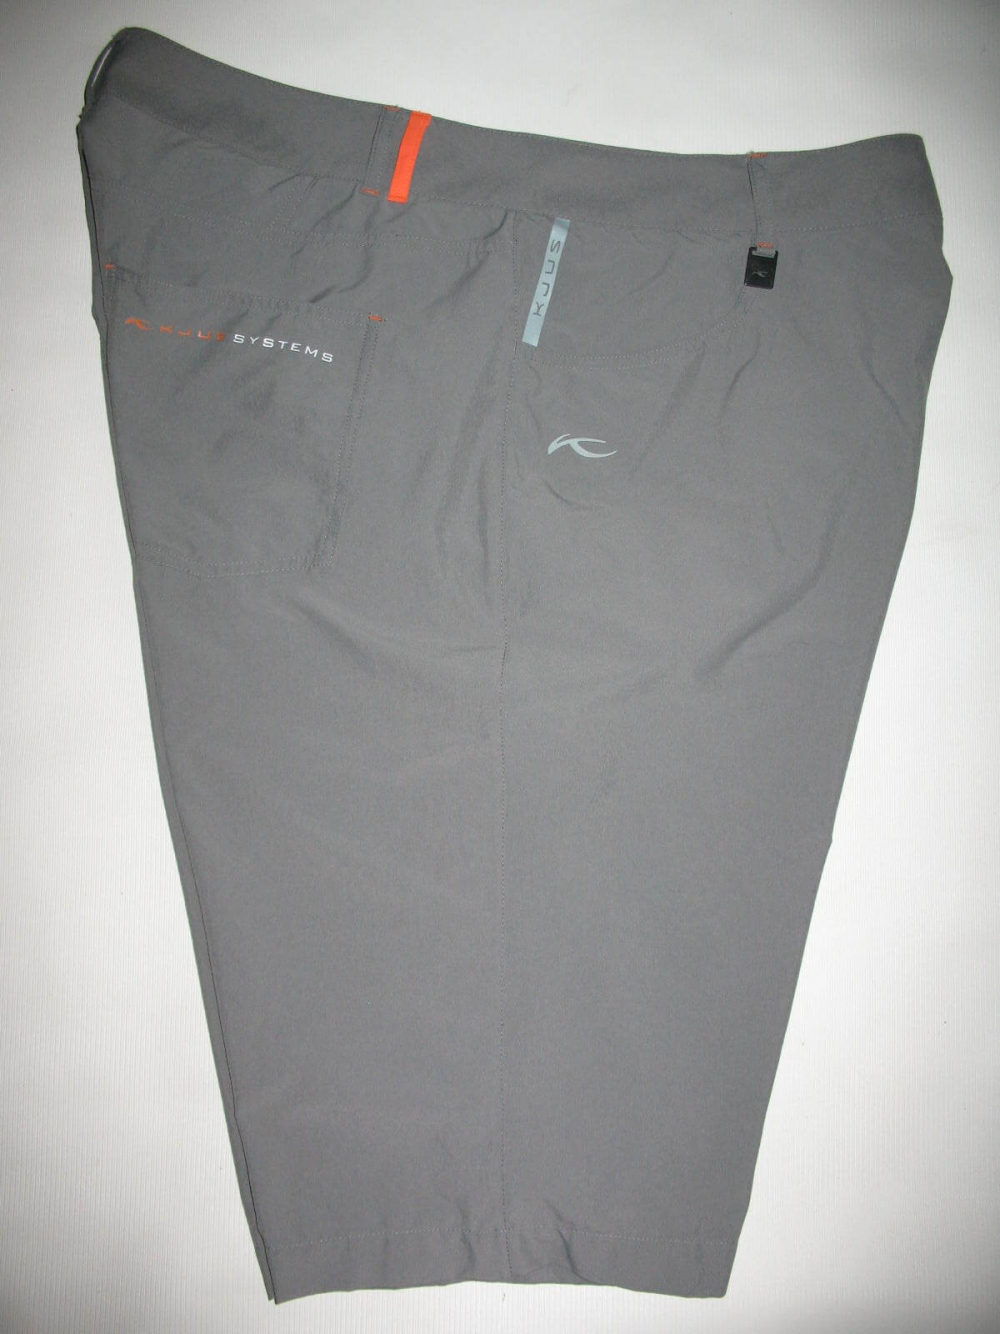 Шорты KJUS systems shorts (размер 54/XL) - 2